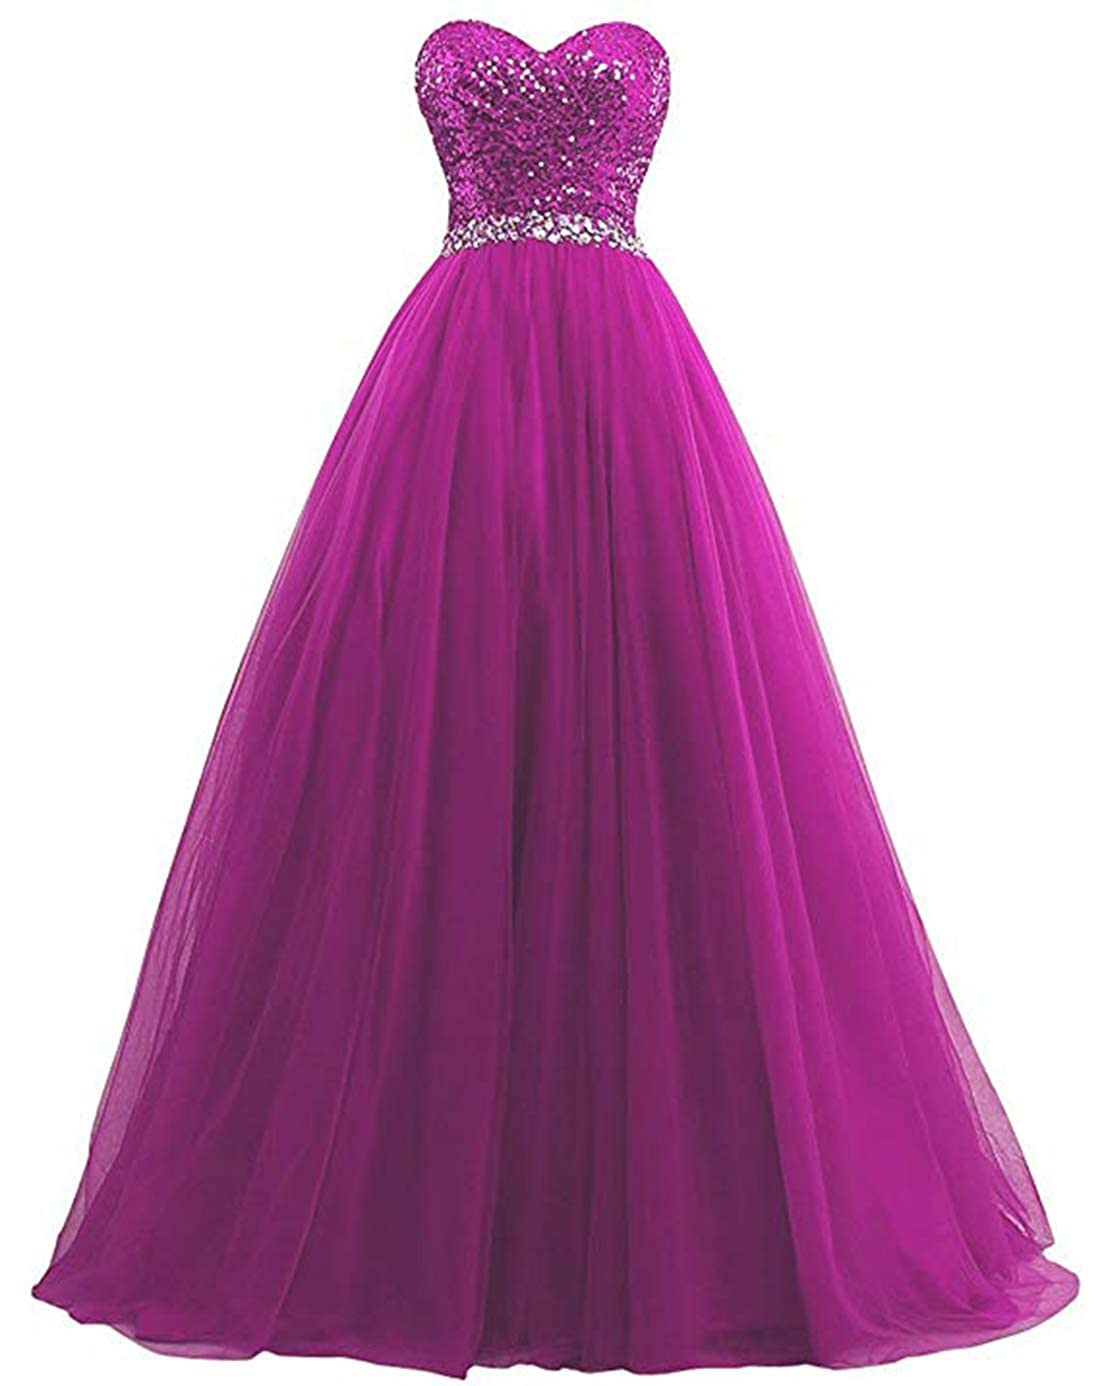 Fuchsia olise bridal Sexy Sweetheart Women's A Line Long Prom Dresses Sequin Party Formal Dresses Ball Gowns